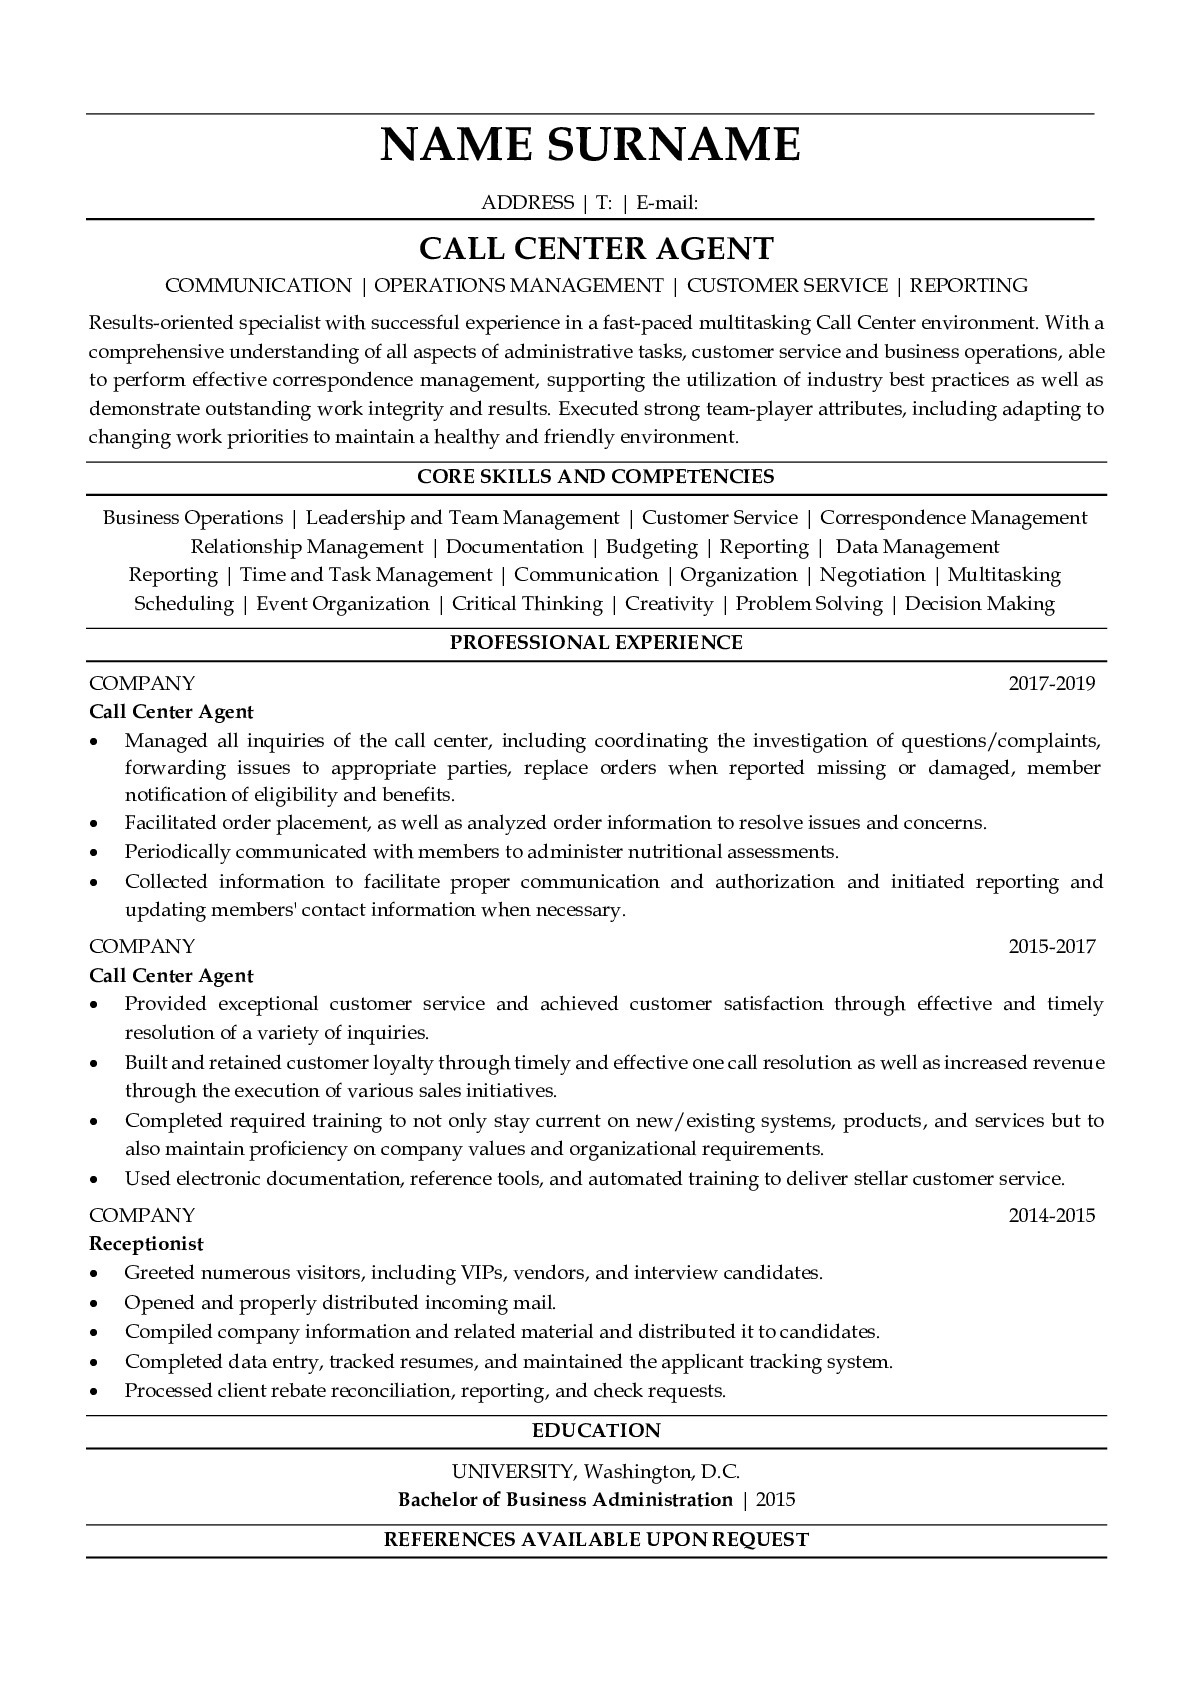 Resume Example for Call Center Agent